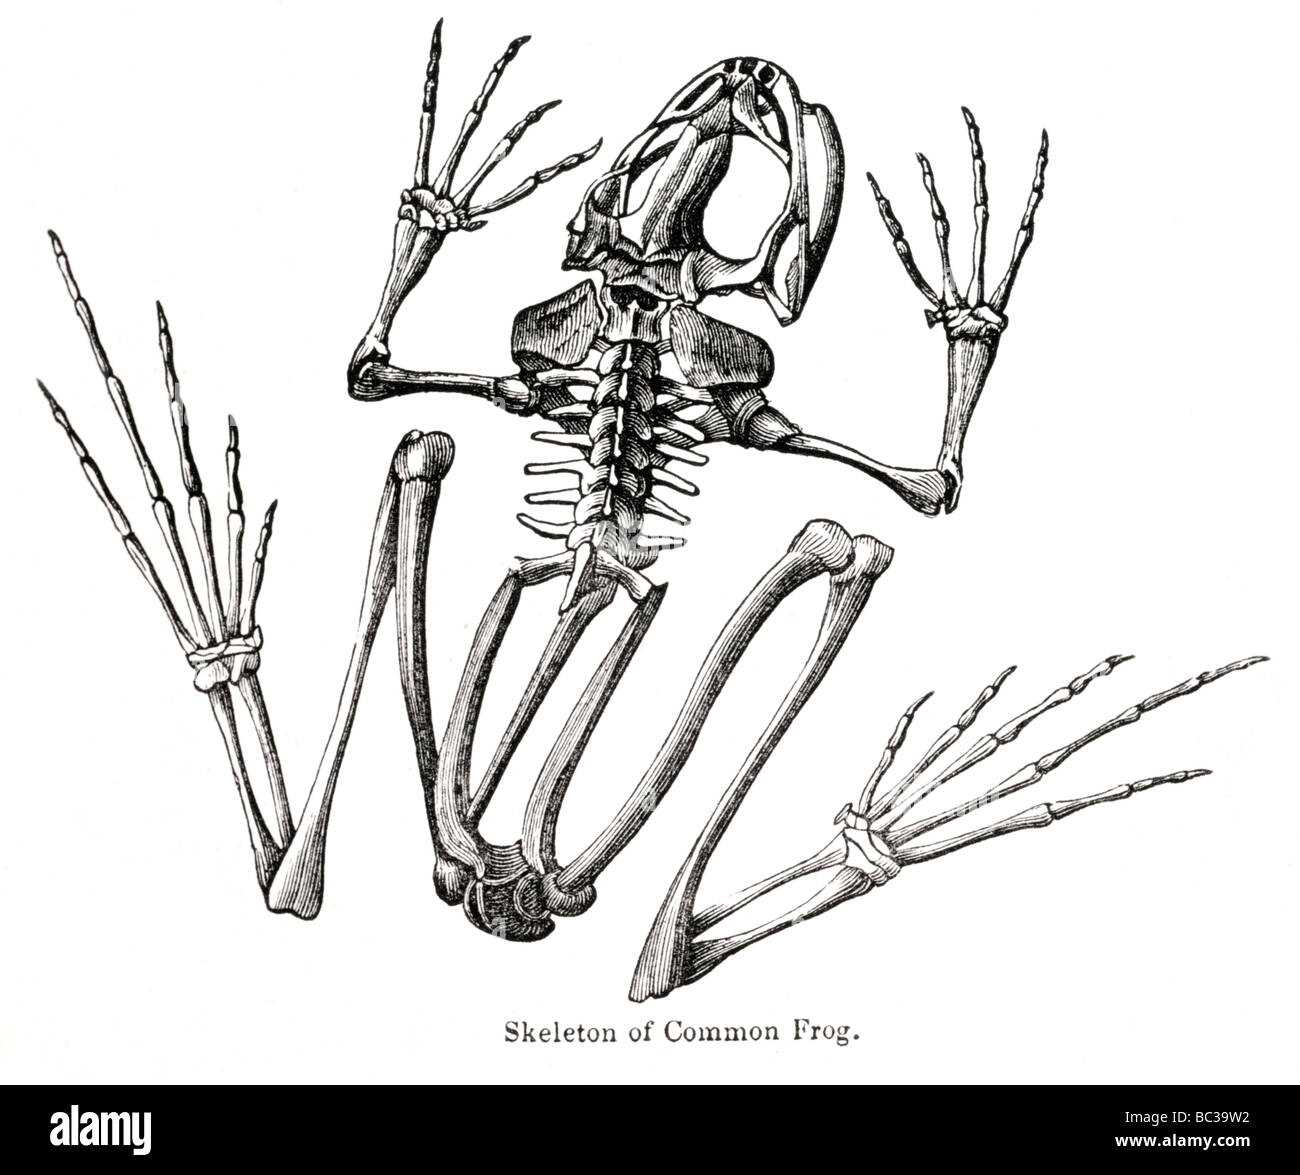 Frog Skeleton Stock Photos & Frog Skeleton Stock Images - Alamy